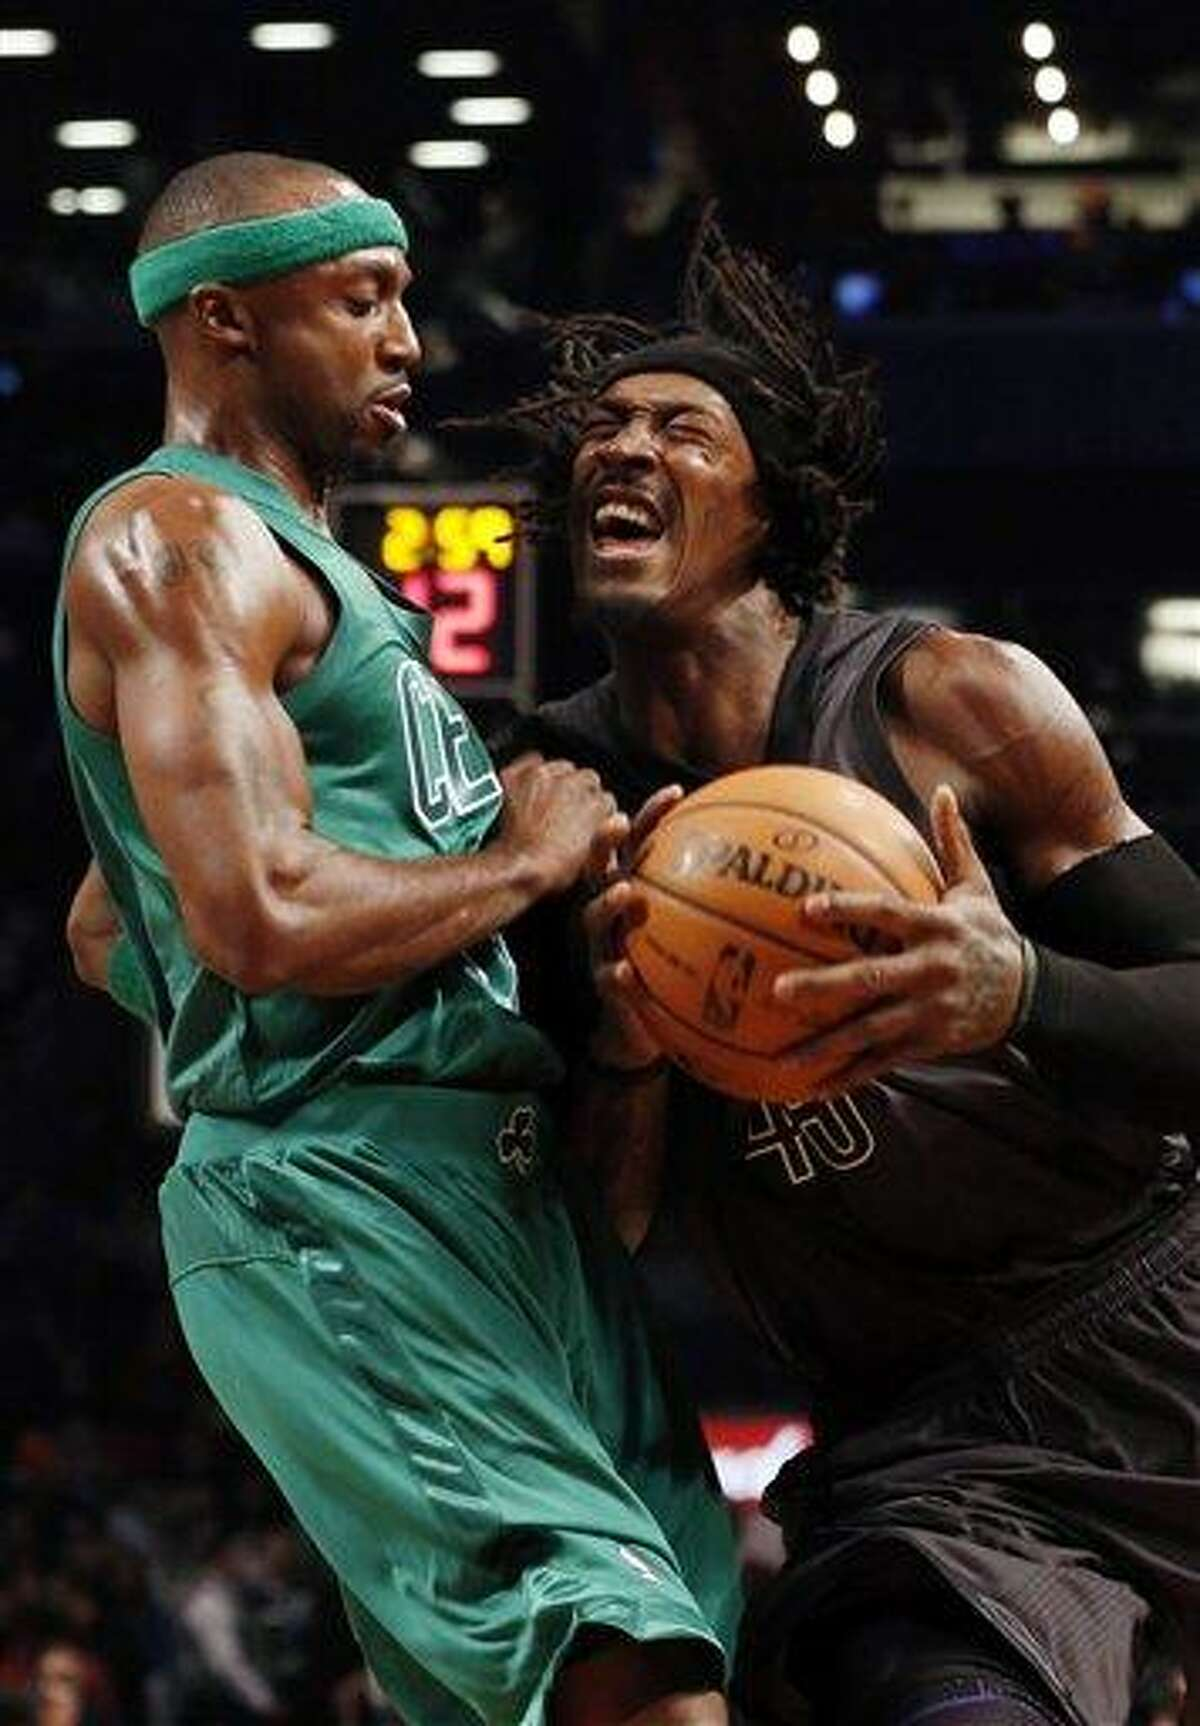 Brooklyn Nets forward Gerald Wallace (45) drives against Boston Celtics guard Jason Terry (4) in the first half of their NBA basketball game at the Barclays Center, Tuesday, Dec. 25, 2012, in New York. (AP Photo/John Minchillo)